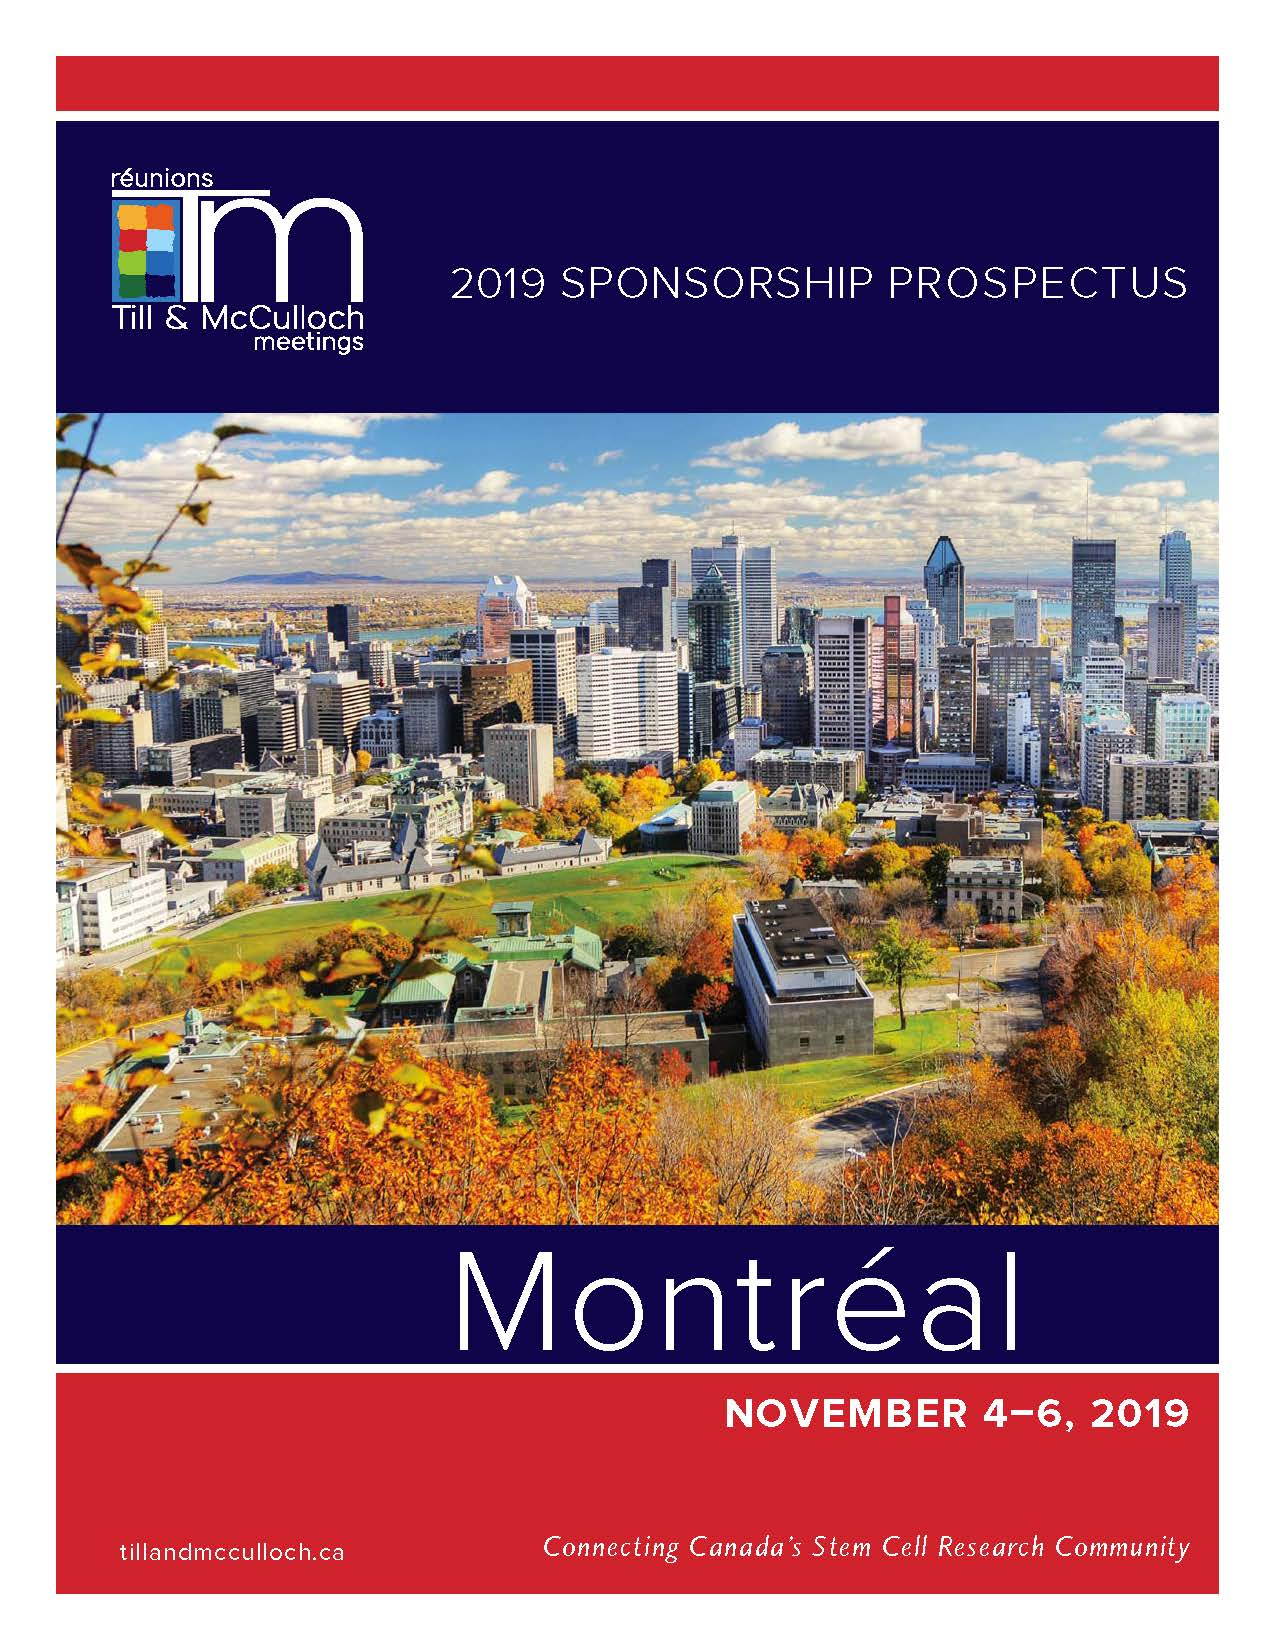 TMM2019 Sponsorship Prospectus FRONT PAGE